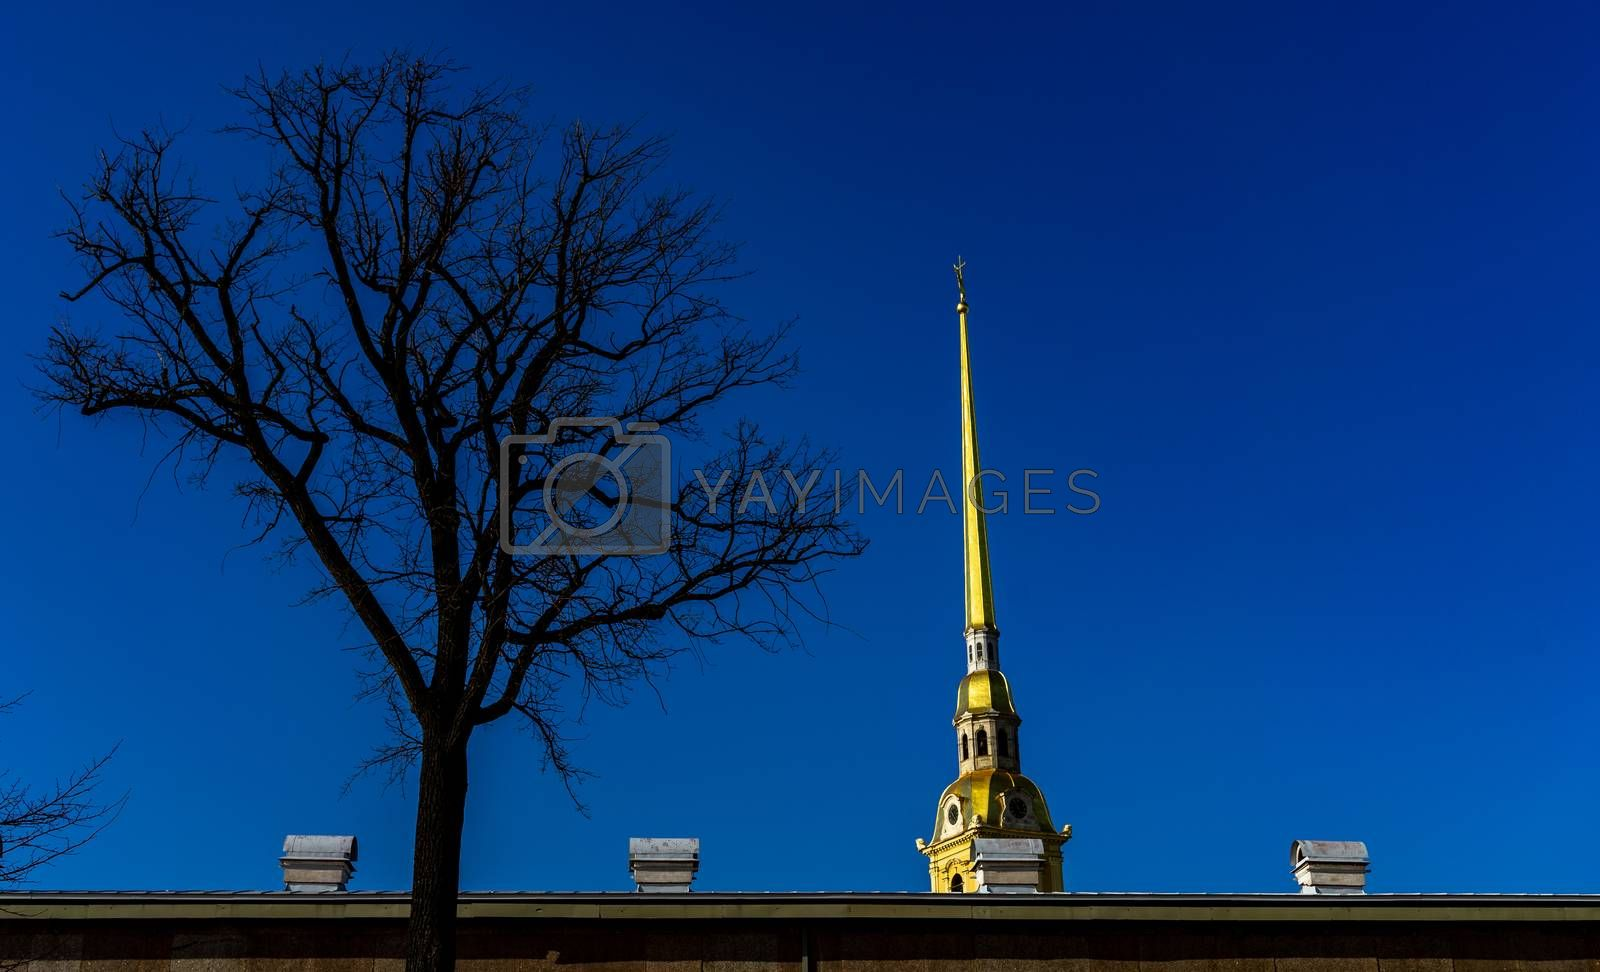 April 18, 2018. St. Petersburg, Russia. Peter and Paul fortress in St. Petersburg.